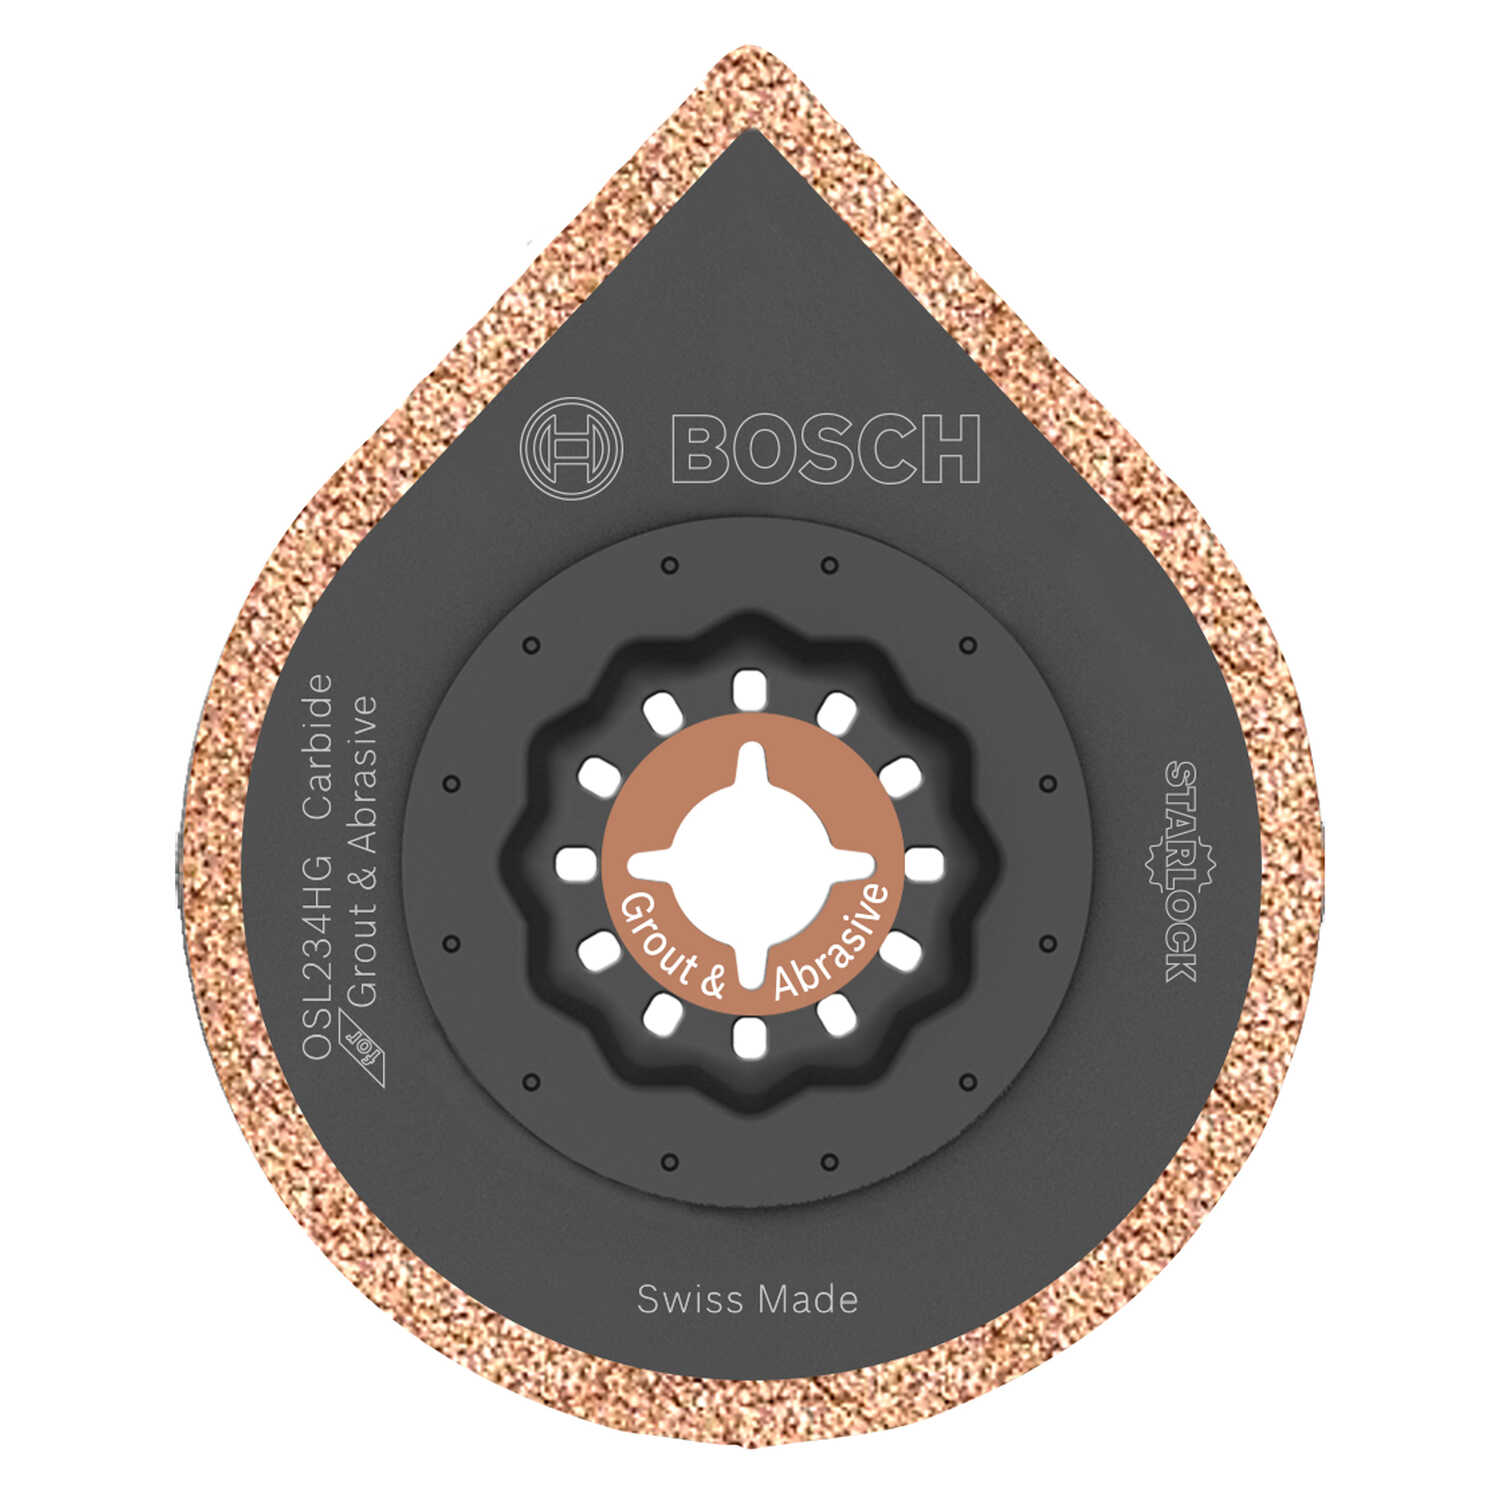 Bosch  Starlock  2-1/2 in.  x 4 in. L Carbide  Grout Removal Blade  1 pk